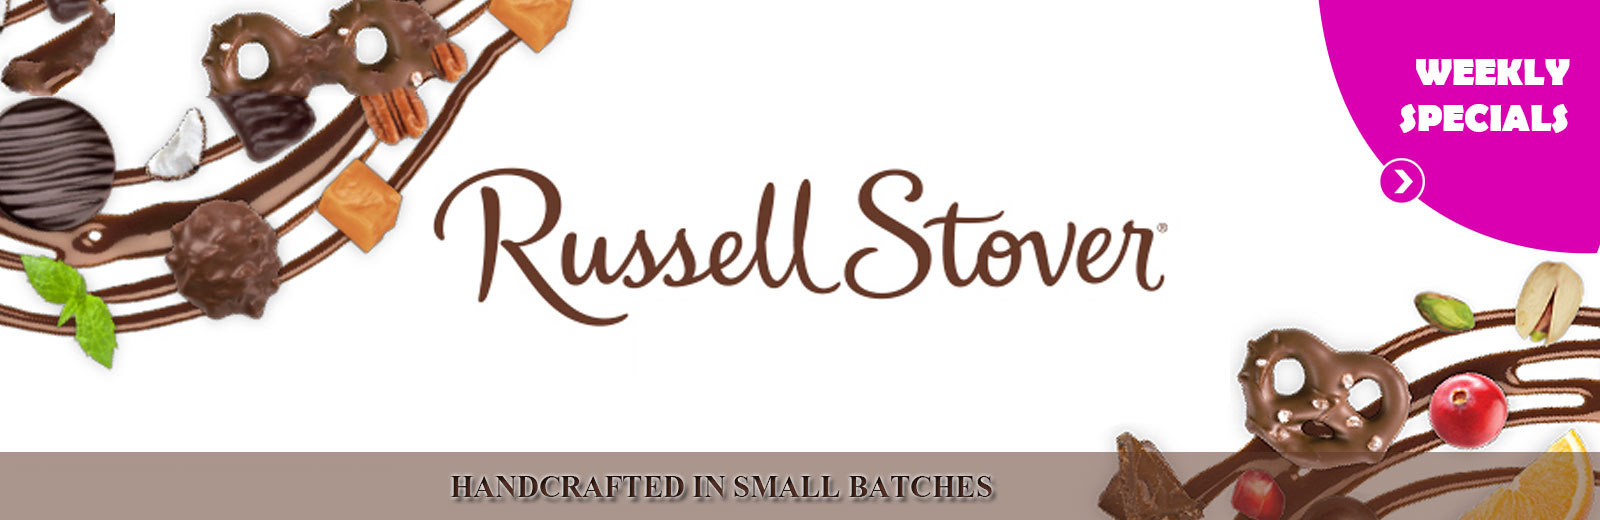 RussellStover